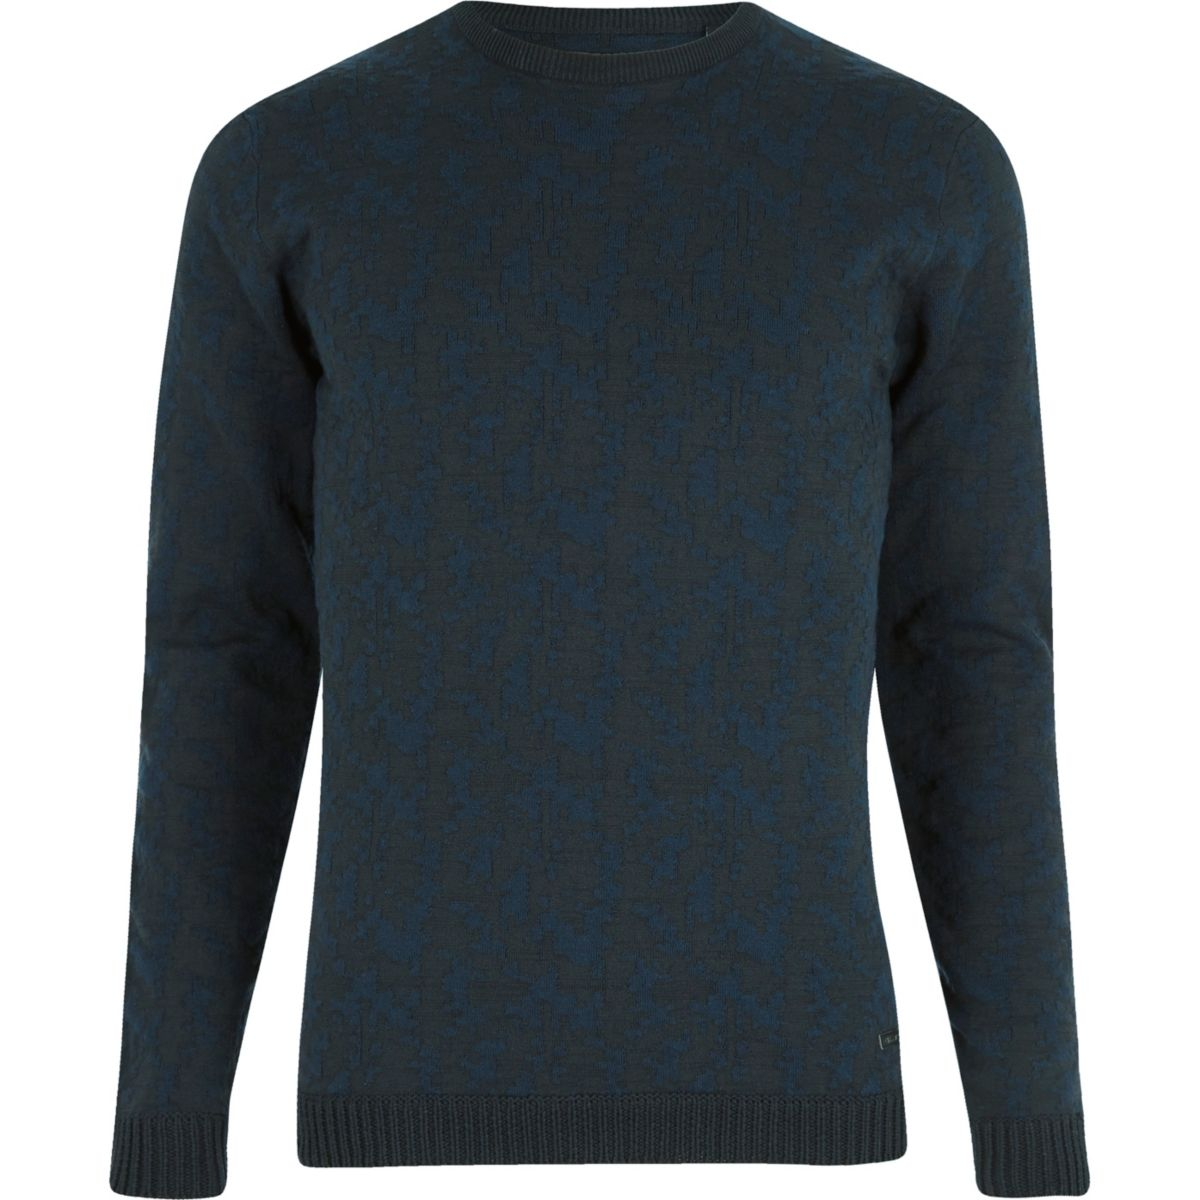 Navy Only & Sons textured crew neck sweater